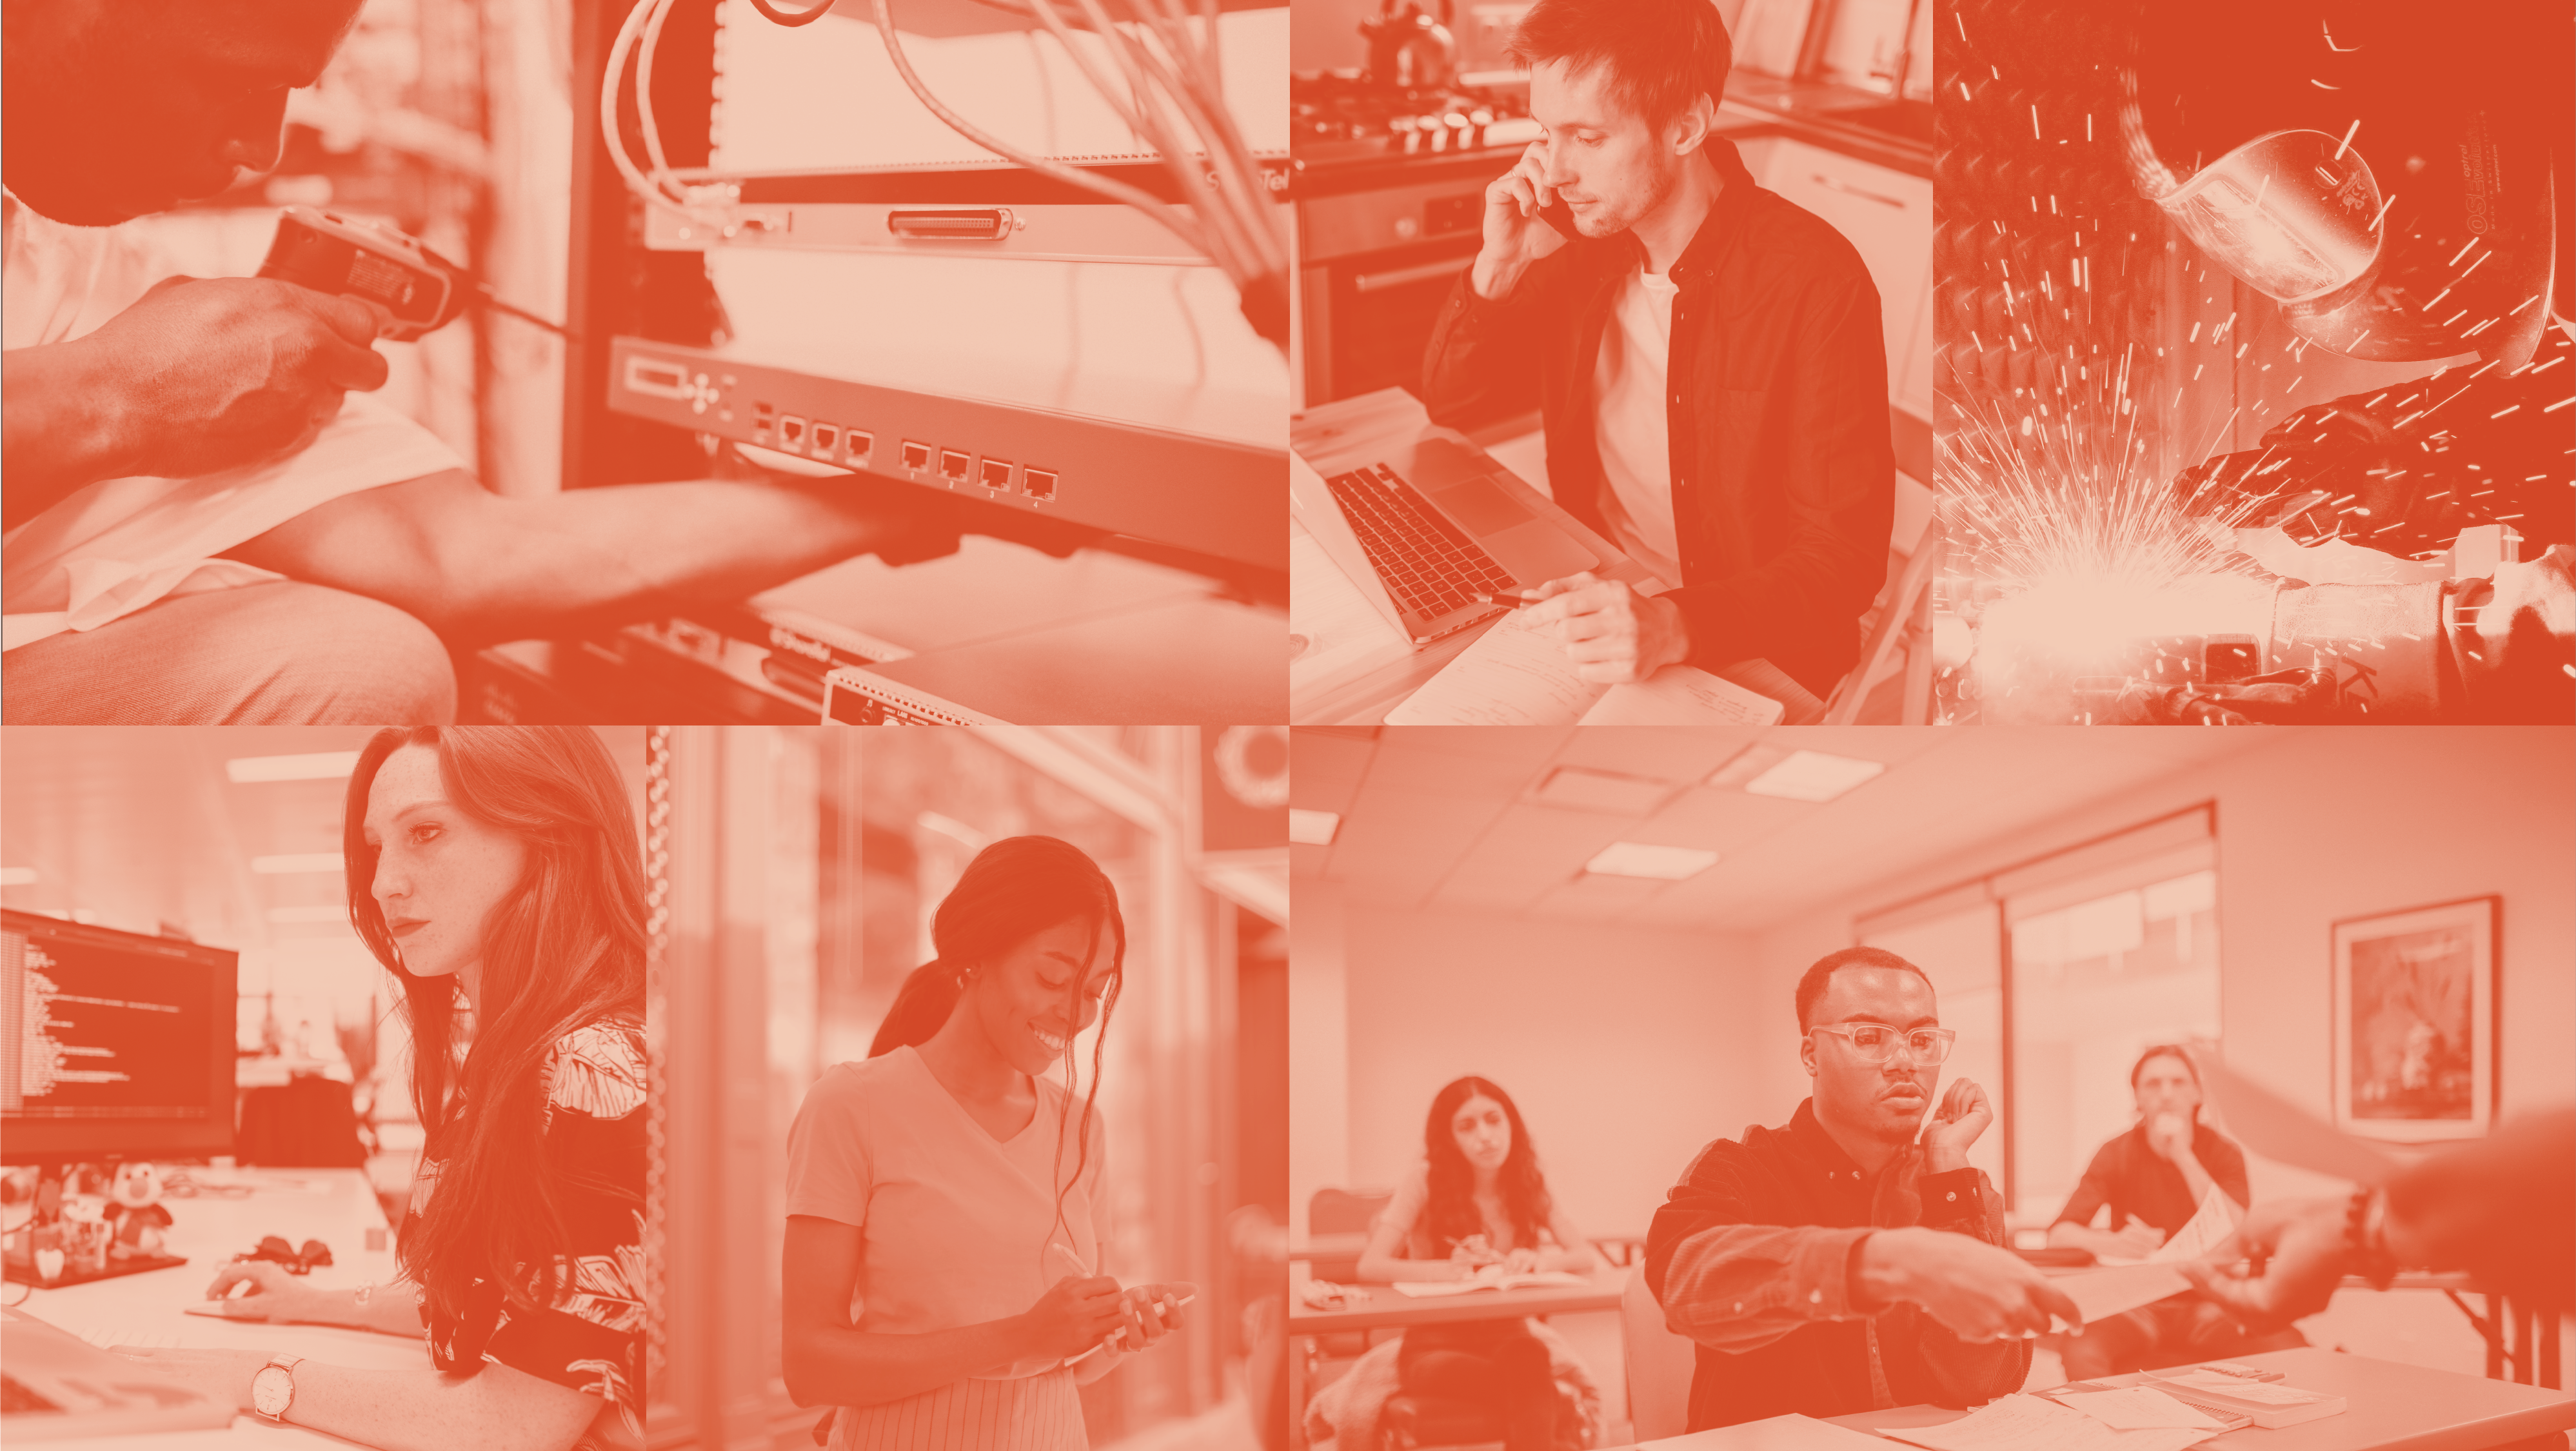 Collage of stock photos depicting various occupations